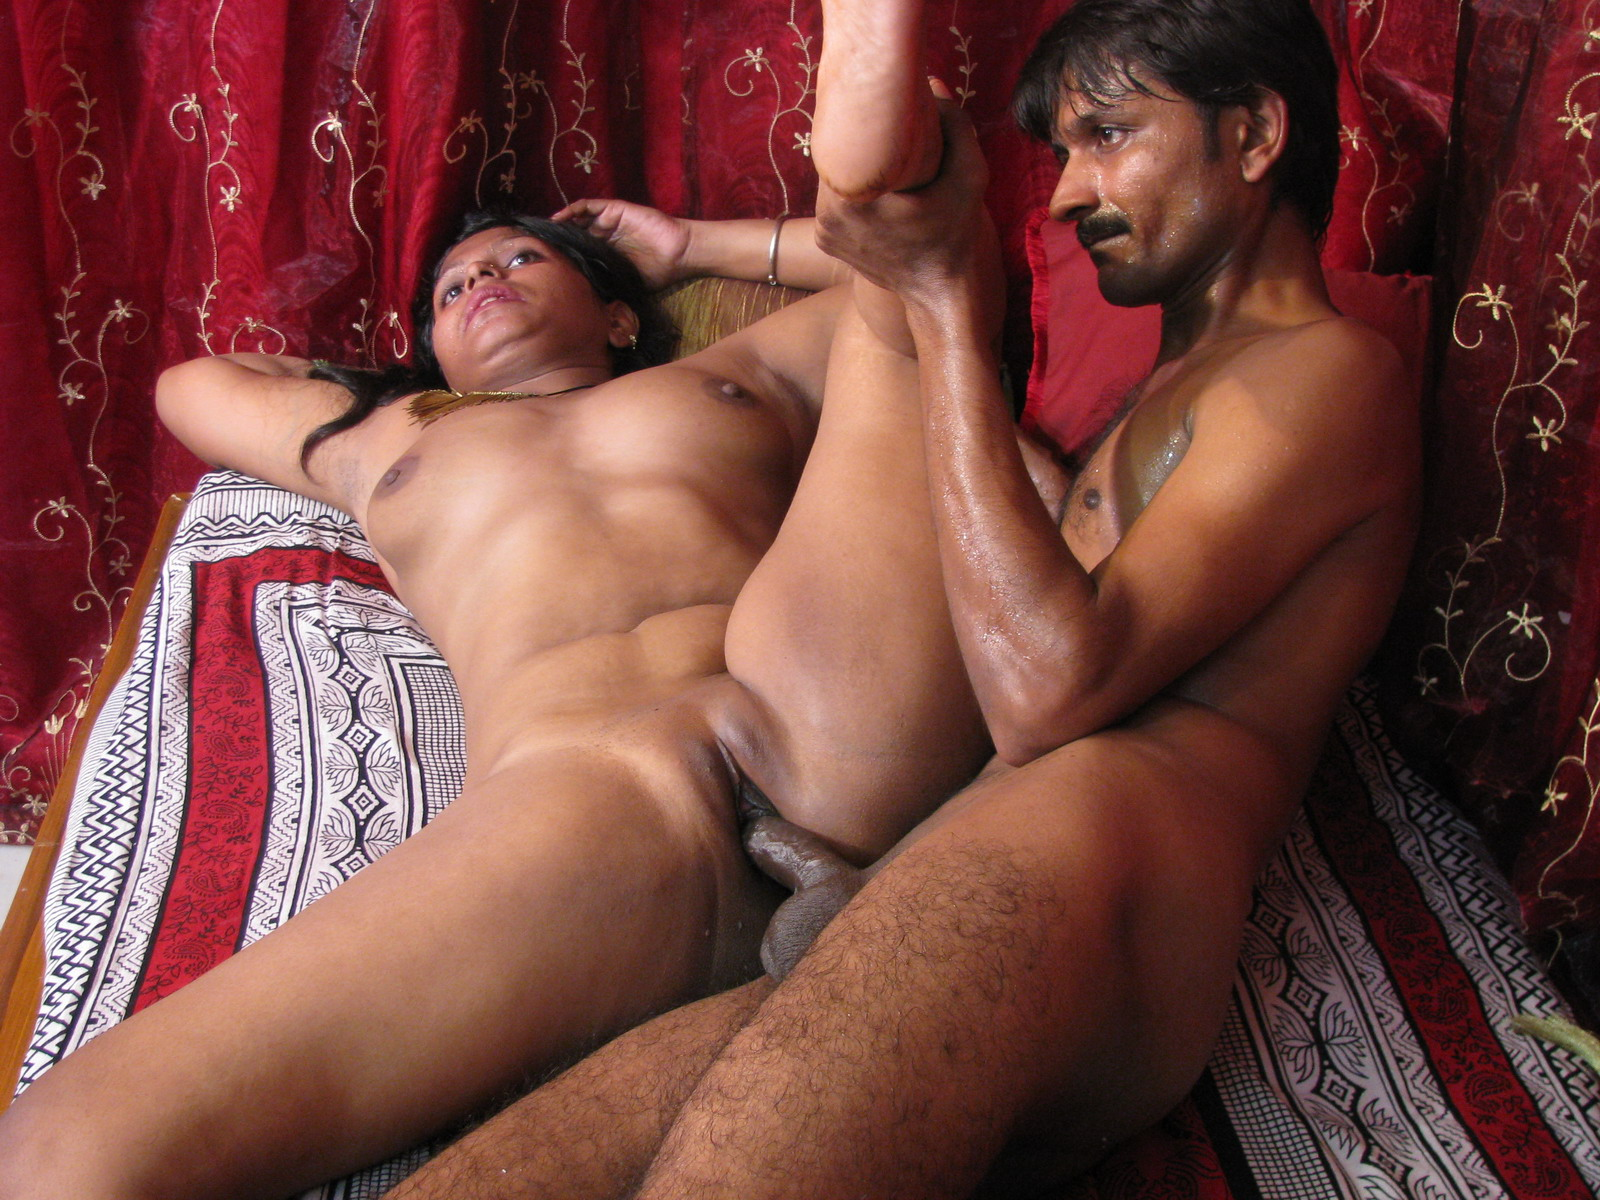 pakistani-sex-hardcor-women-with-boy-photos